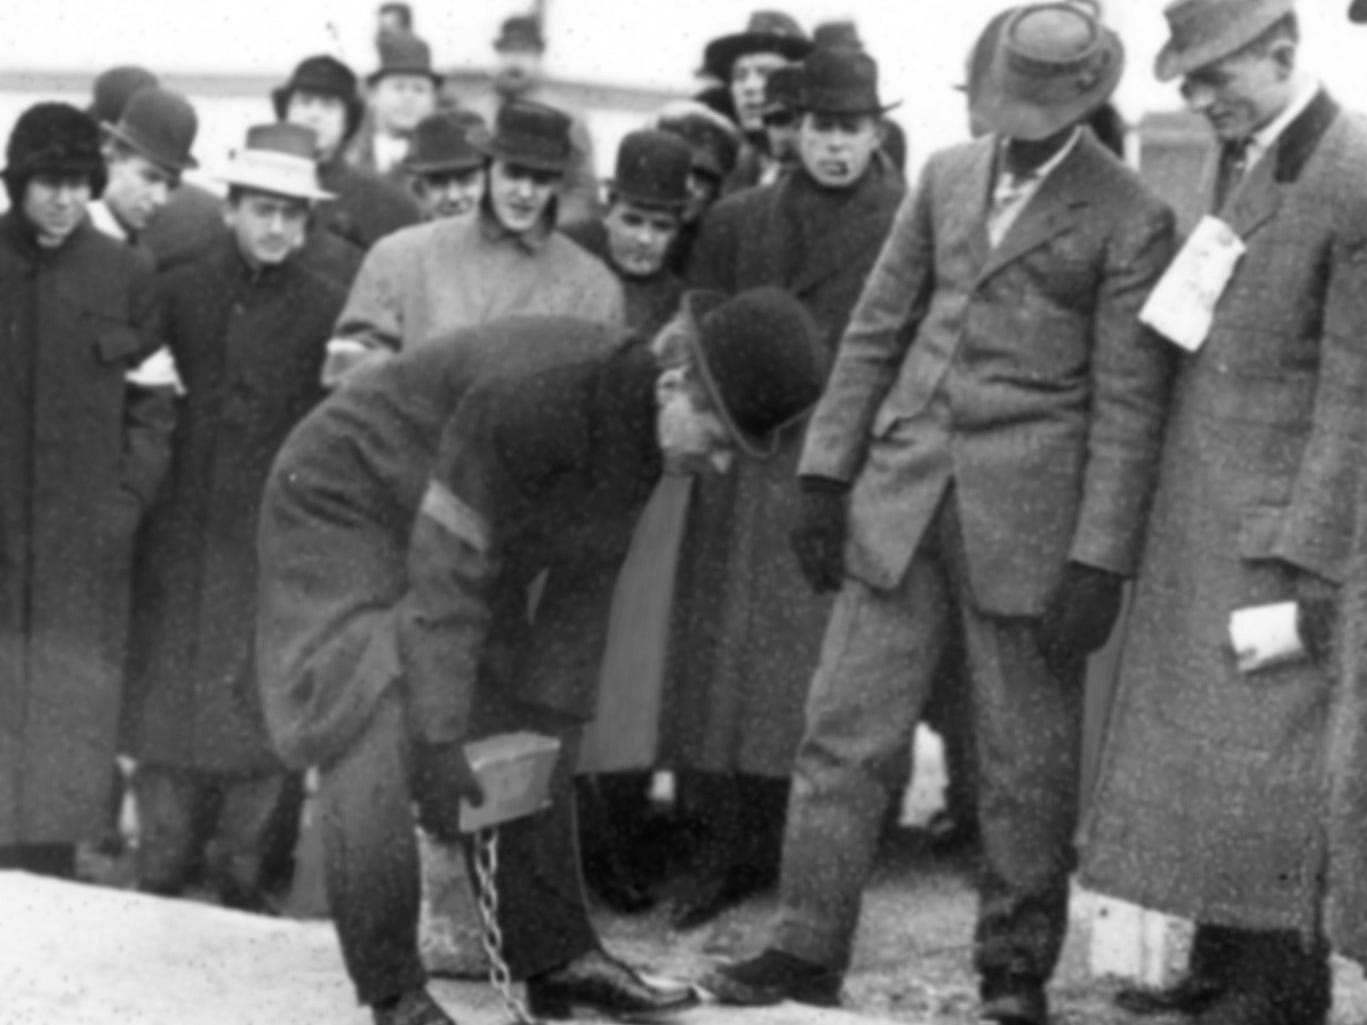 The rededication ceremony of the Indianapolis Motor Speedway Dec 17, 1909. A silver gold-plated brick was chained and cemented in its place at the start finish line in front of the judges stand. Gov. Thomas R. Marshall had the honor of placing the brick in place.